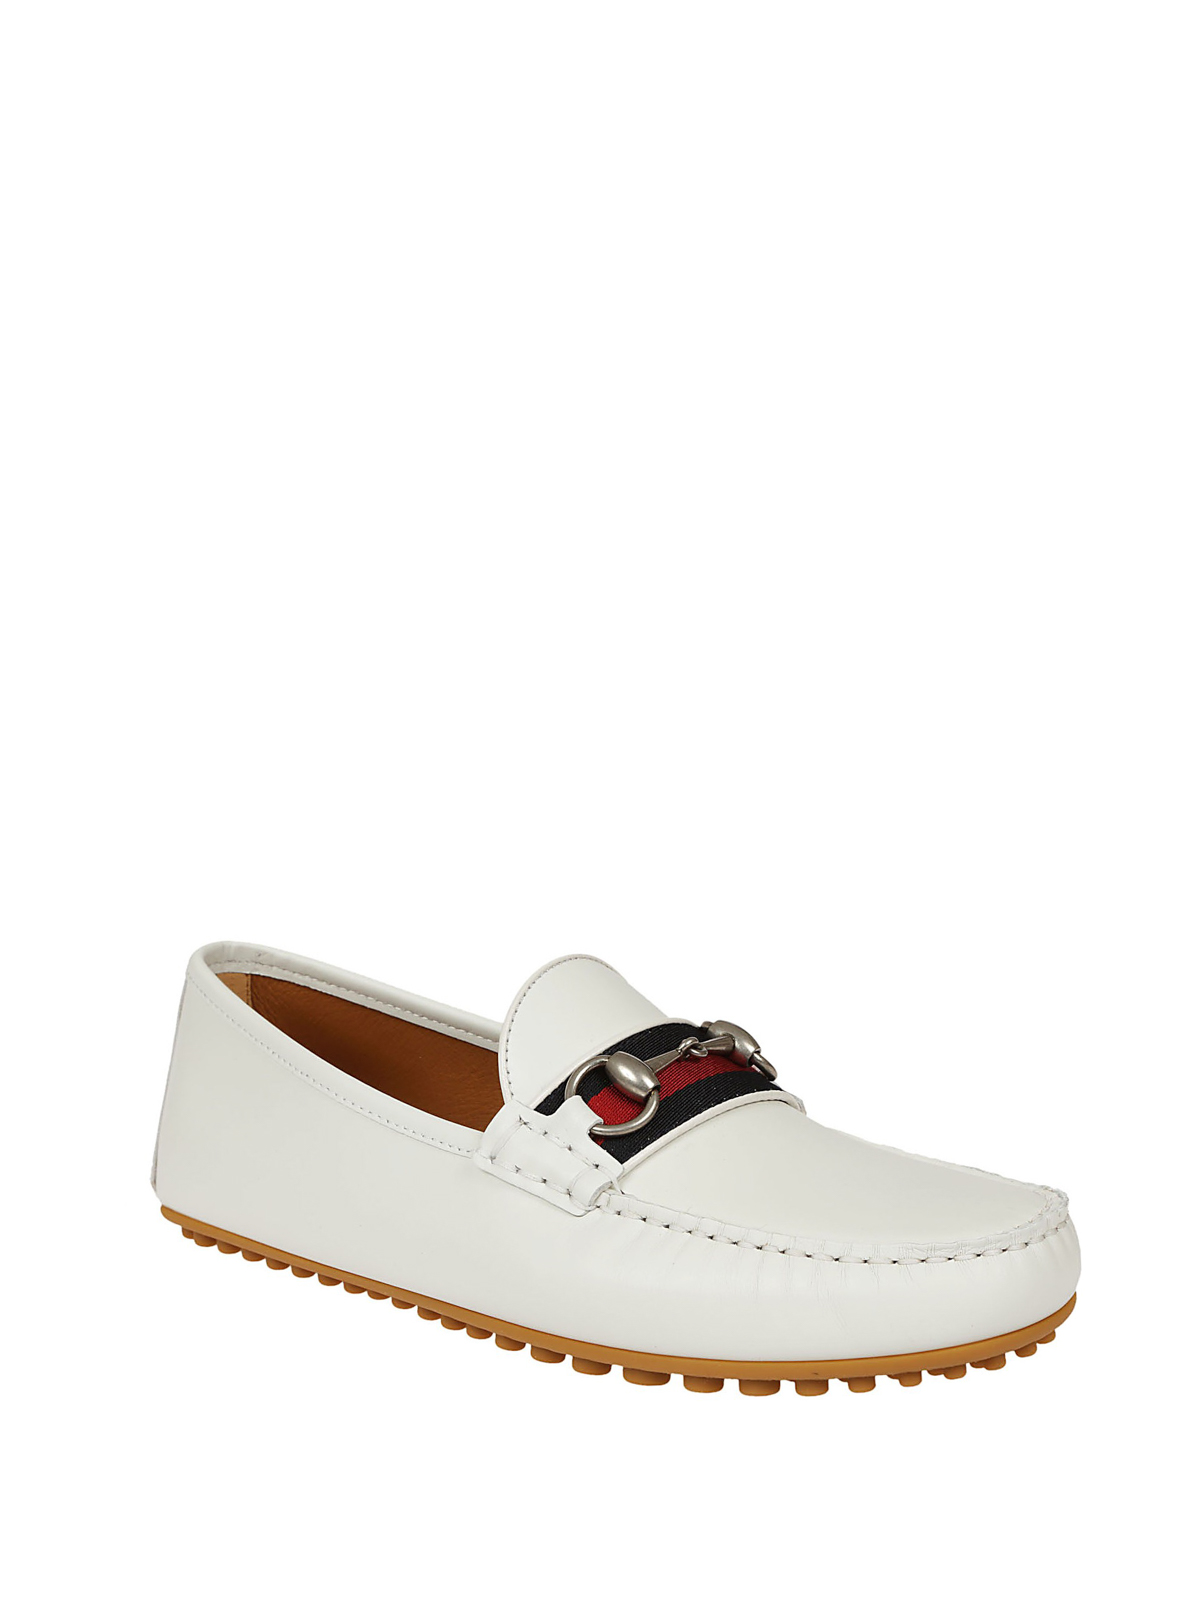 8f45d8f650e GUCCI  Loafers   Slippers online - Web and Horsebit leather loafers